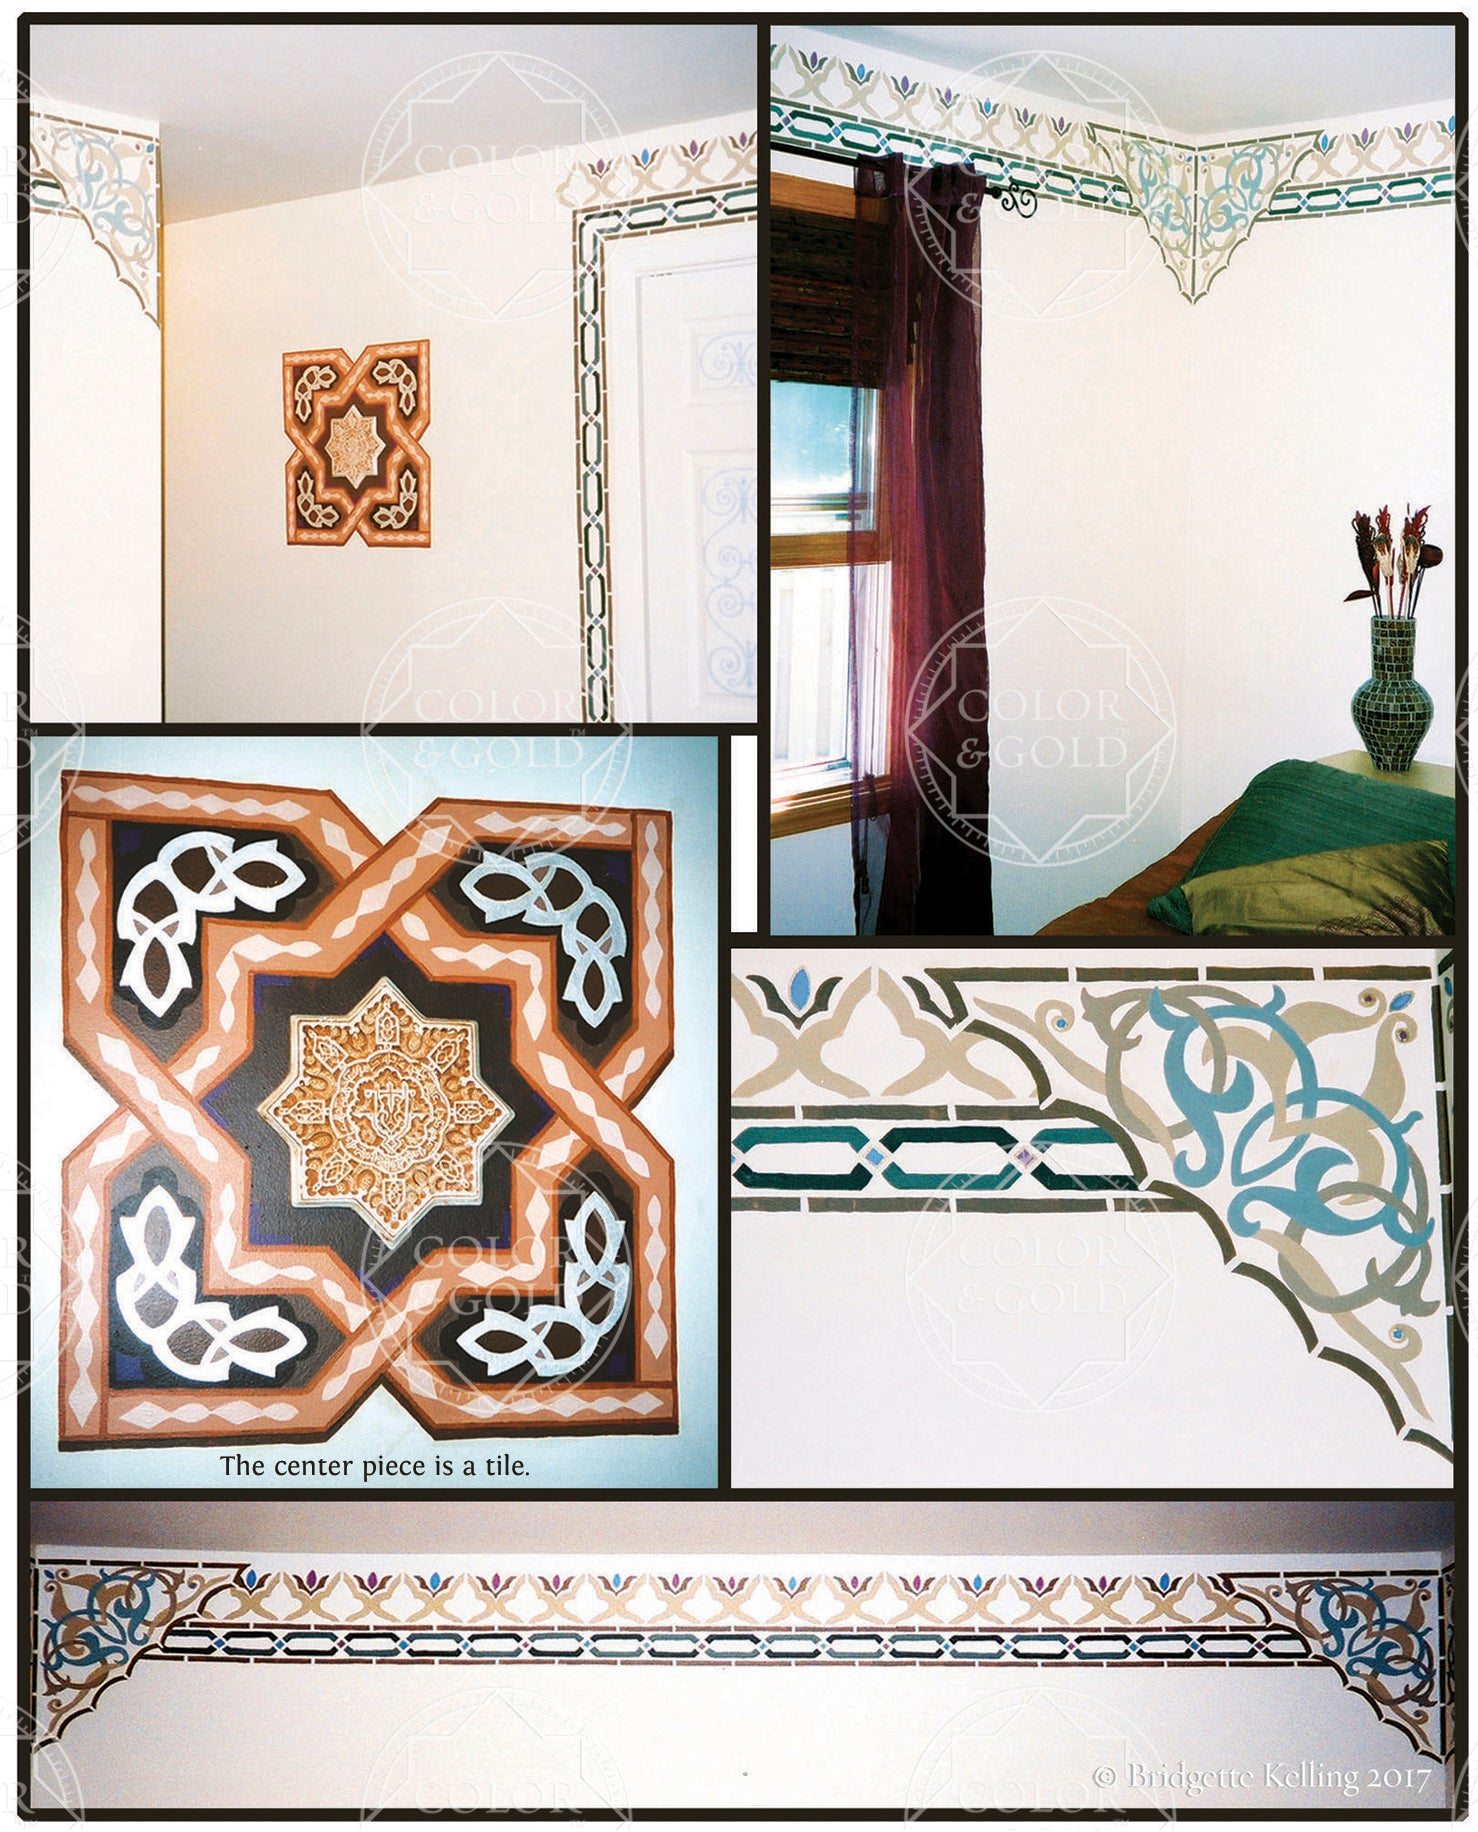 Paintings for a Moroccan themed bedroom in brown & slate blue with a tile from the Alhambra Palace - Color & Gold LLC © Bridgette Kelling